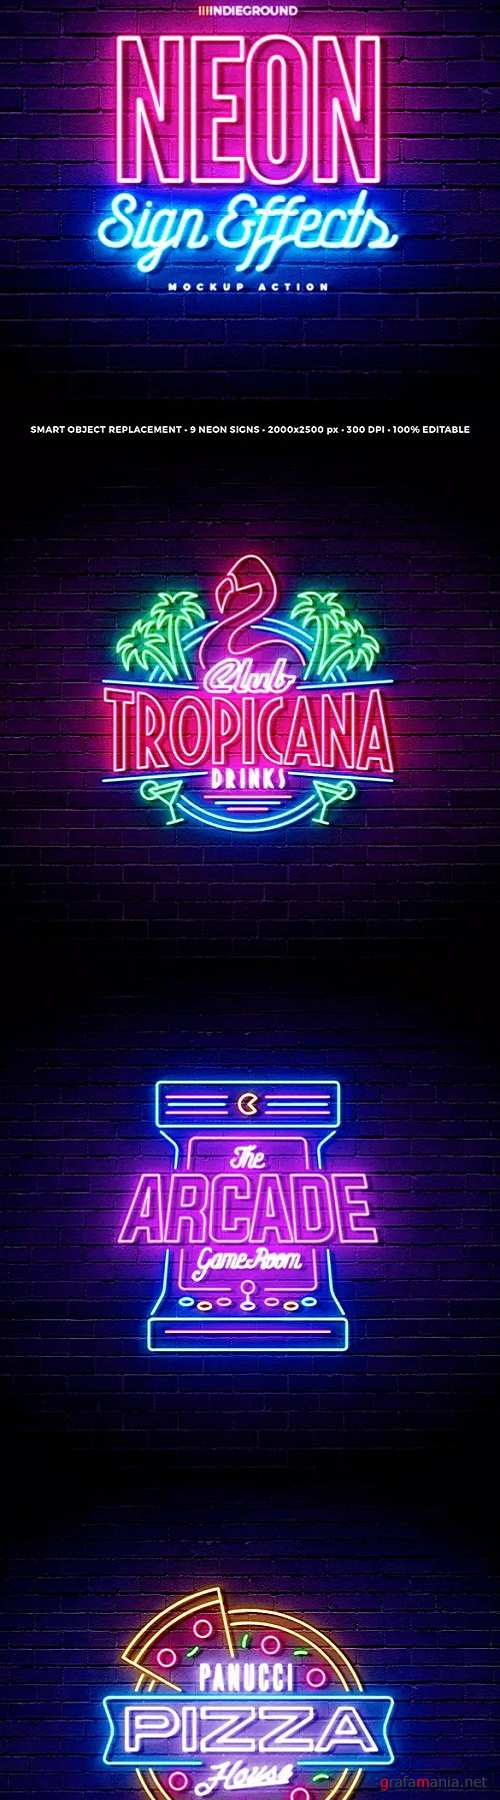 Neon Sign Effects 23320789